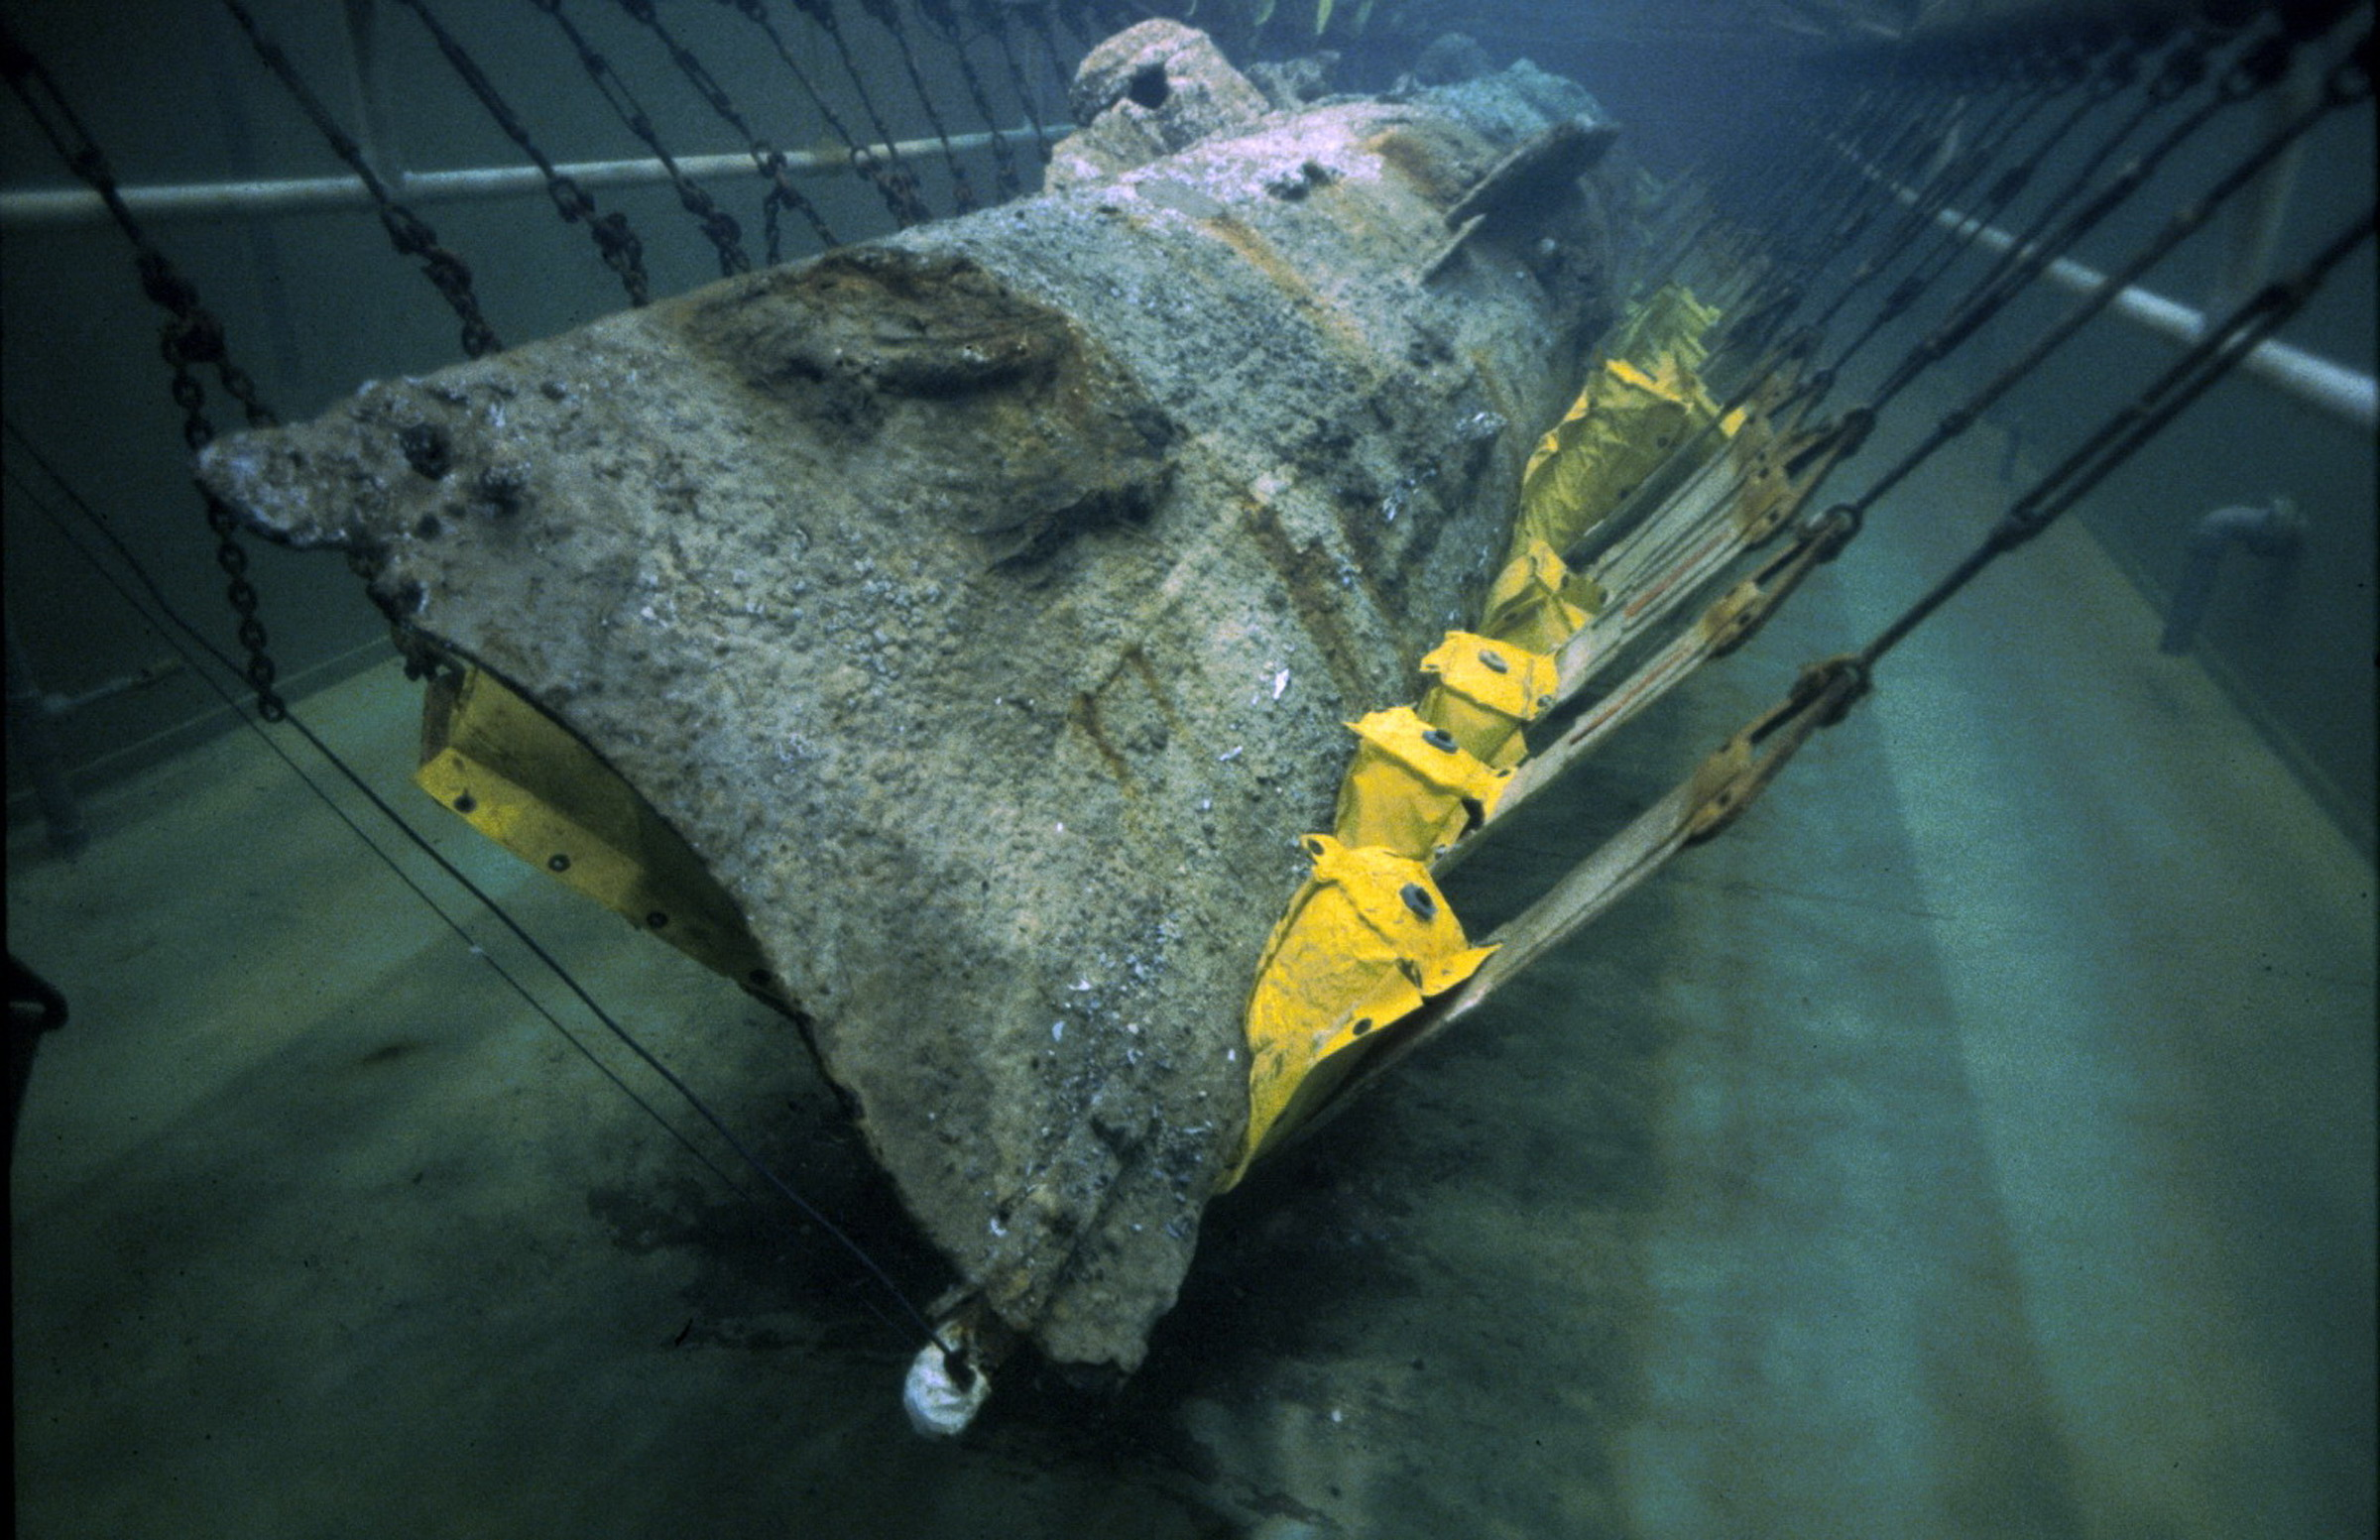 new details of civil war sub's past uncovered